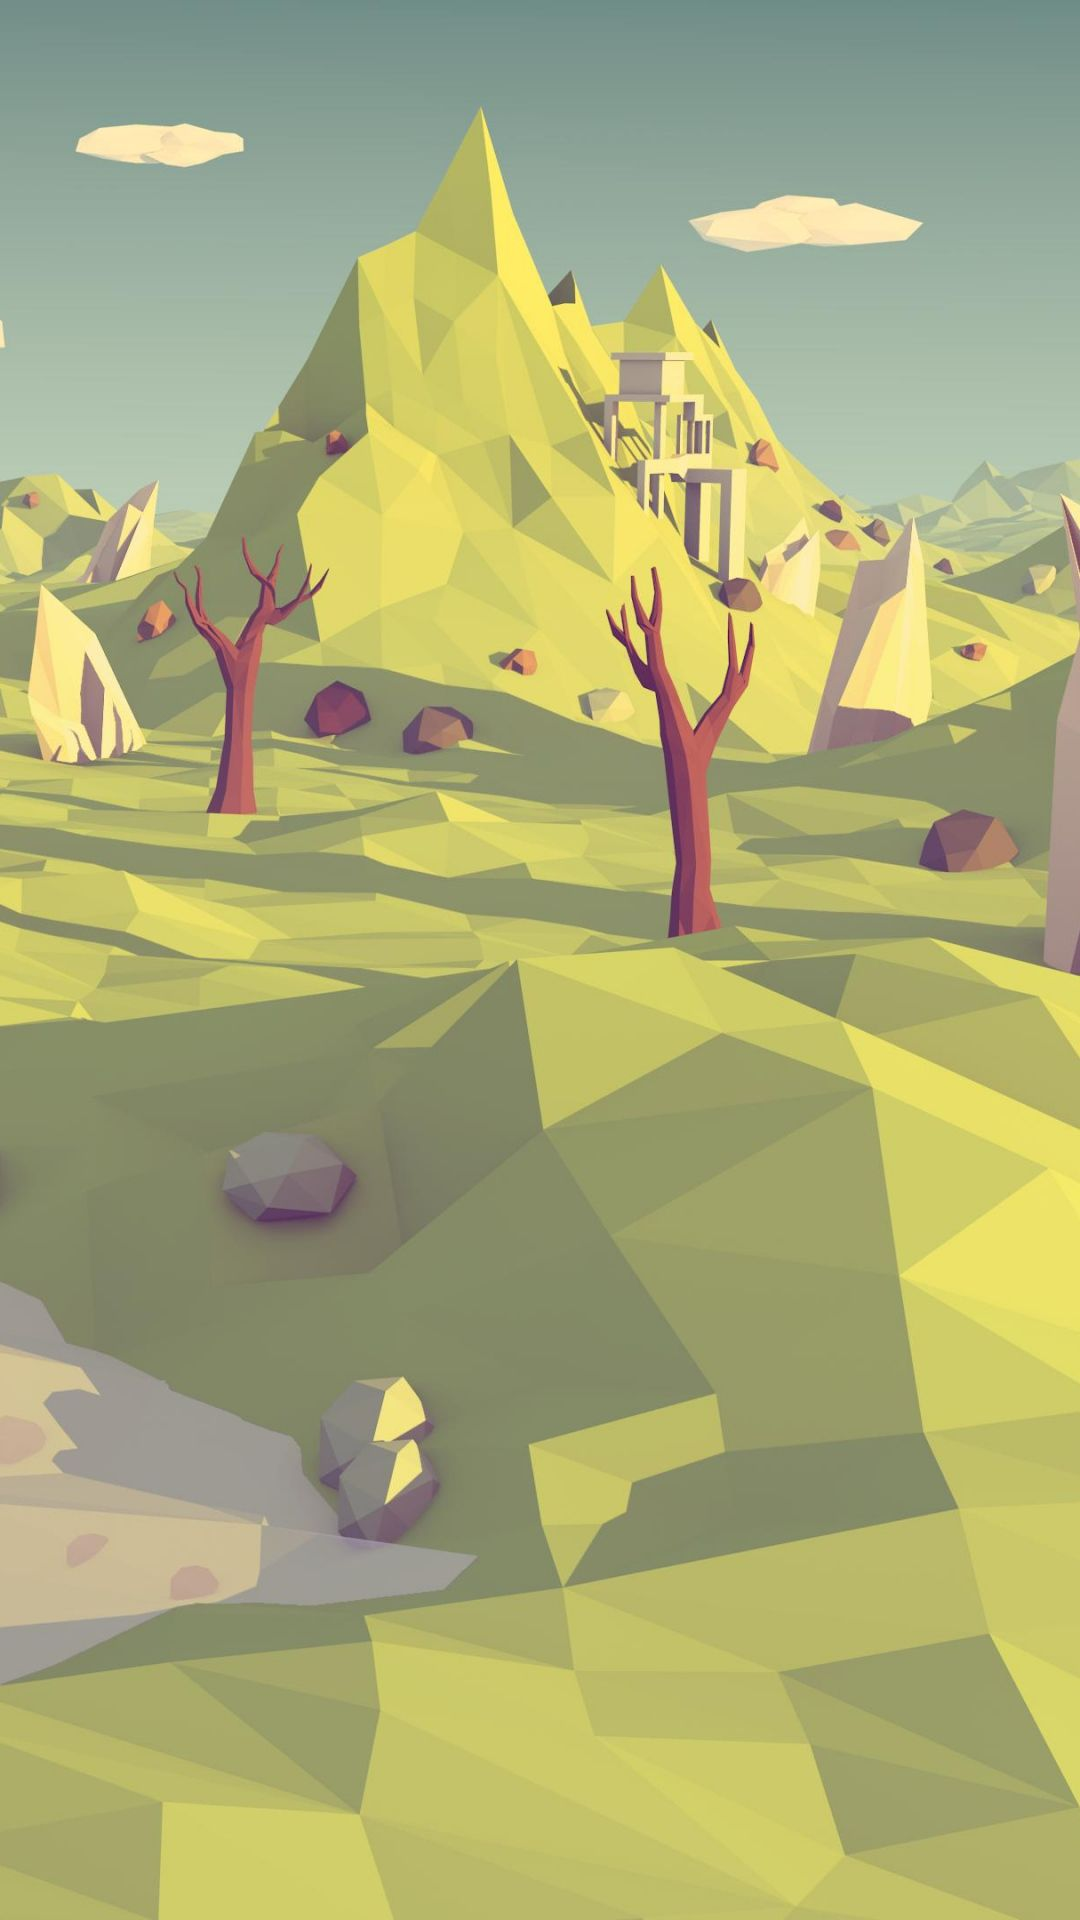 Funny Polygon Mountain Landscape Illustration Art #iPhone #7 #wallpaper | iPhone 6~8 Wallpapers ...